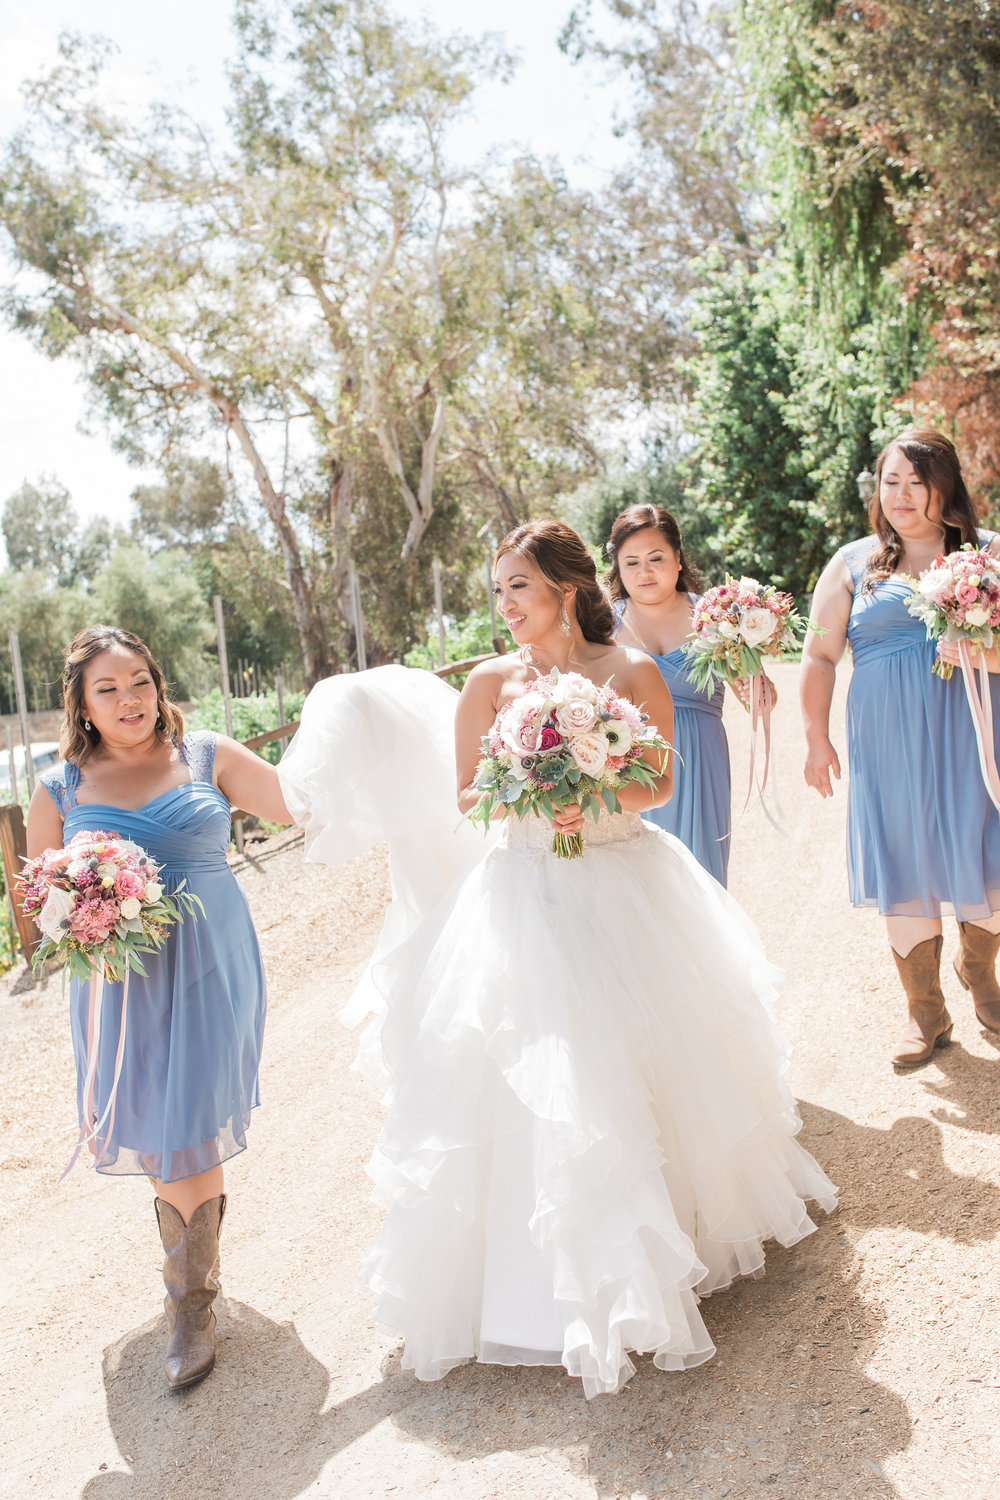 """How gorgeous are these three Bridesmaids in their blue sheath dresses! According to Country Living , gone are the days of triple-digit bridal parties lined in a row wearing long heavy gowns. When it comes to 2017 """"Country Wedding Trends That Are Going to Be Huge This Year,"""" a triplet of maidens is a perfect, intimate size to get your matrimony hoedown started!"""